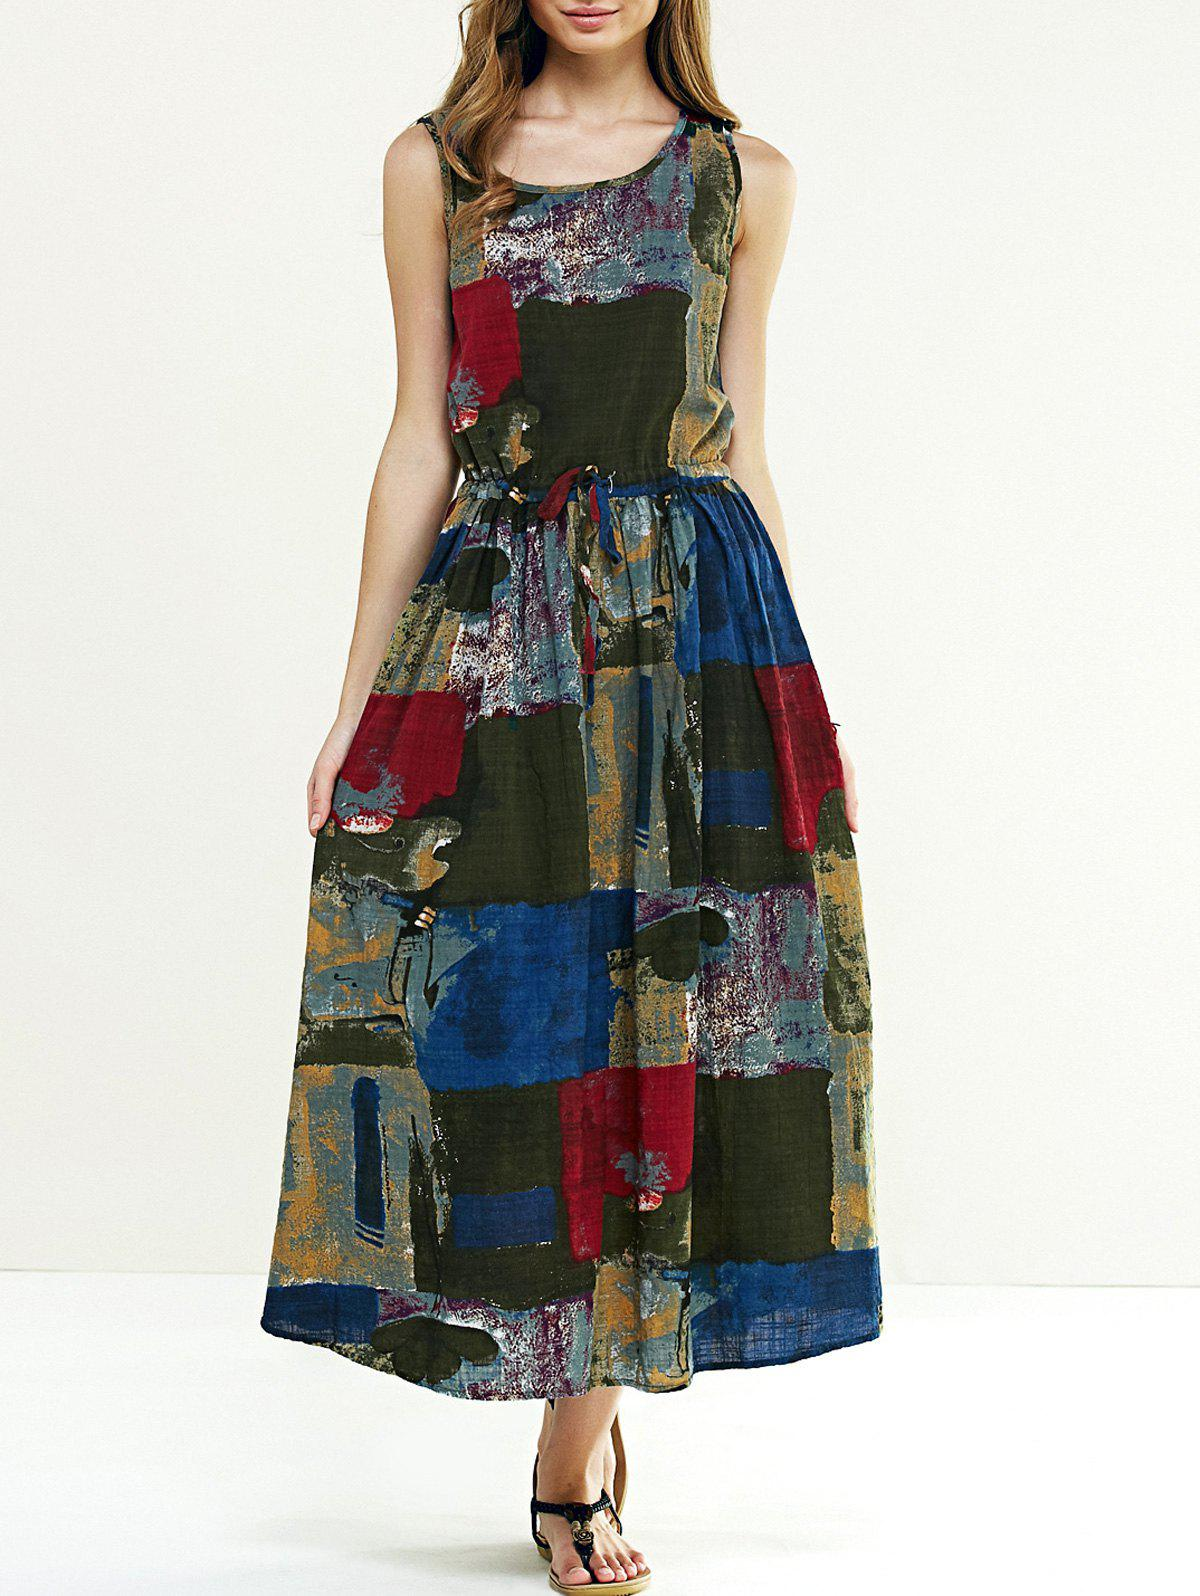 Simple Women's Tie-Dyed Maxi Dress - COLORMIX ONE SIZE